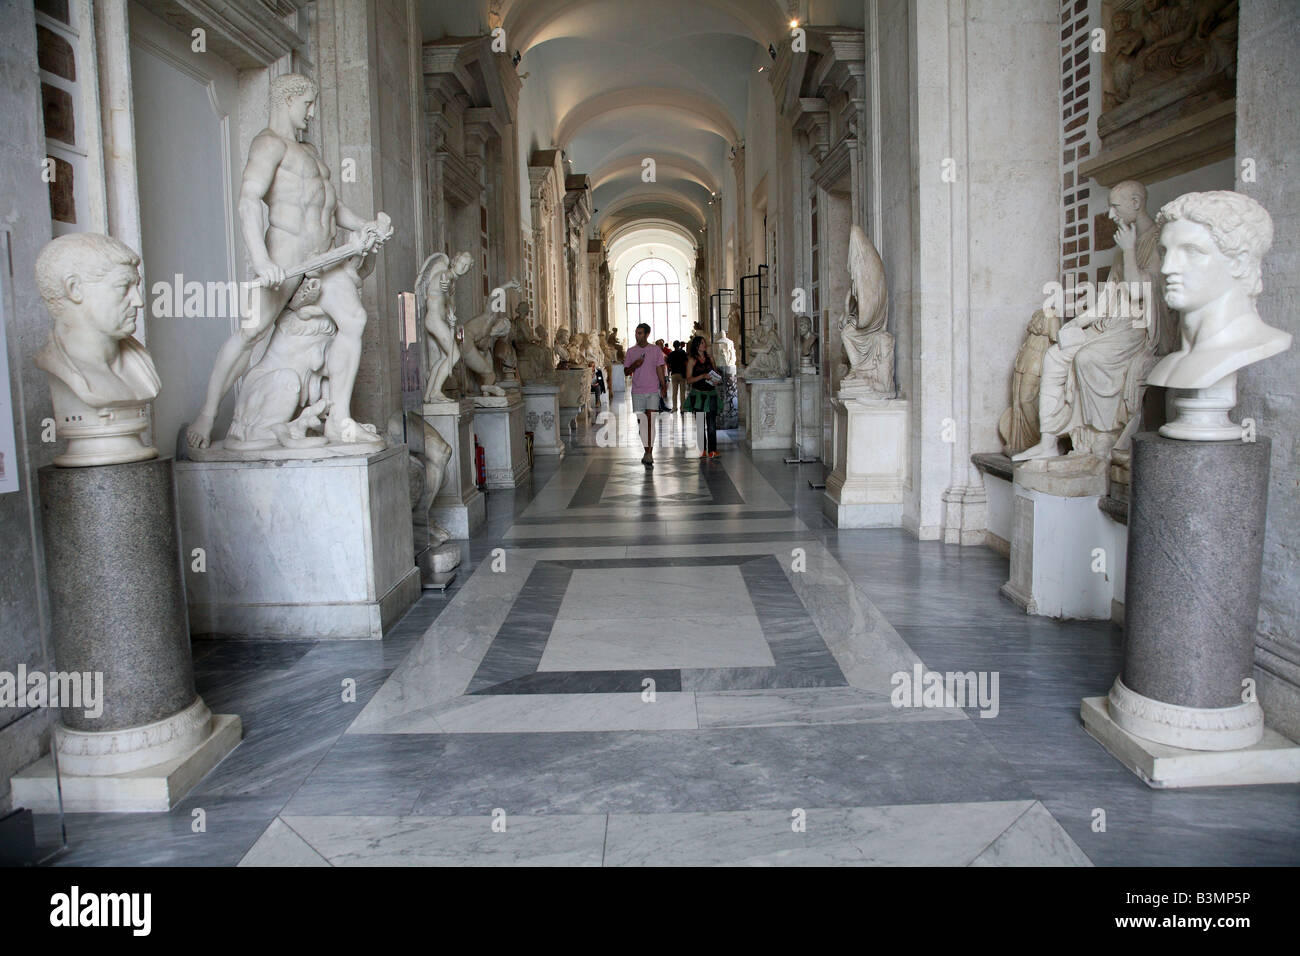 Italy Rome Statues in Capitoline Museum Stock Photo